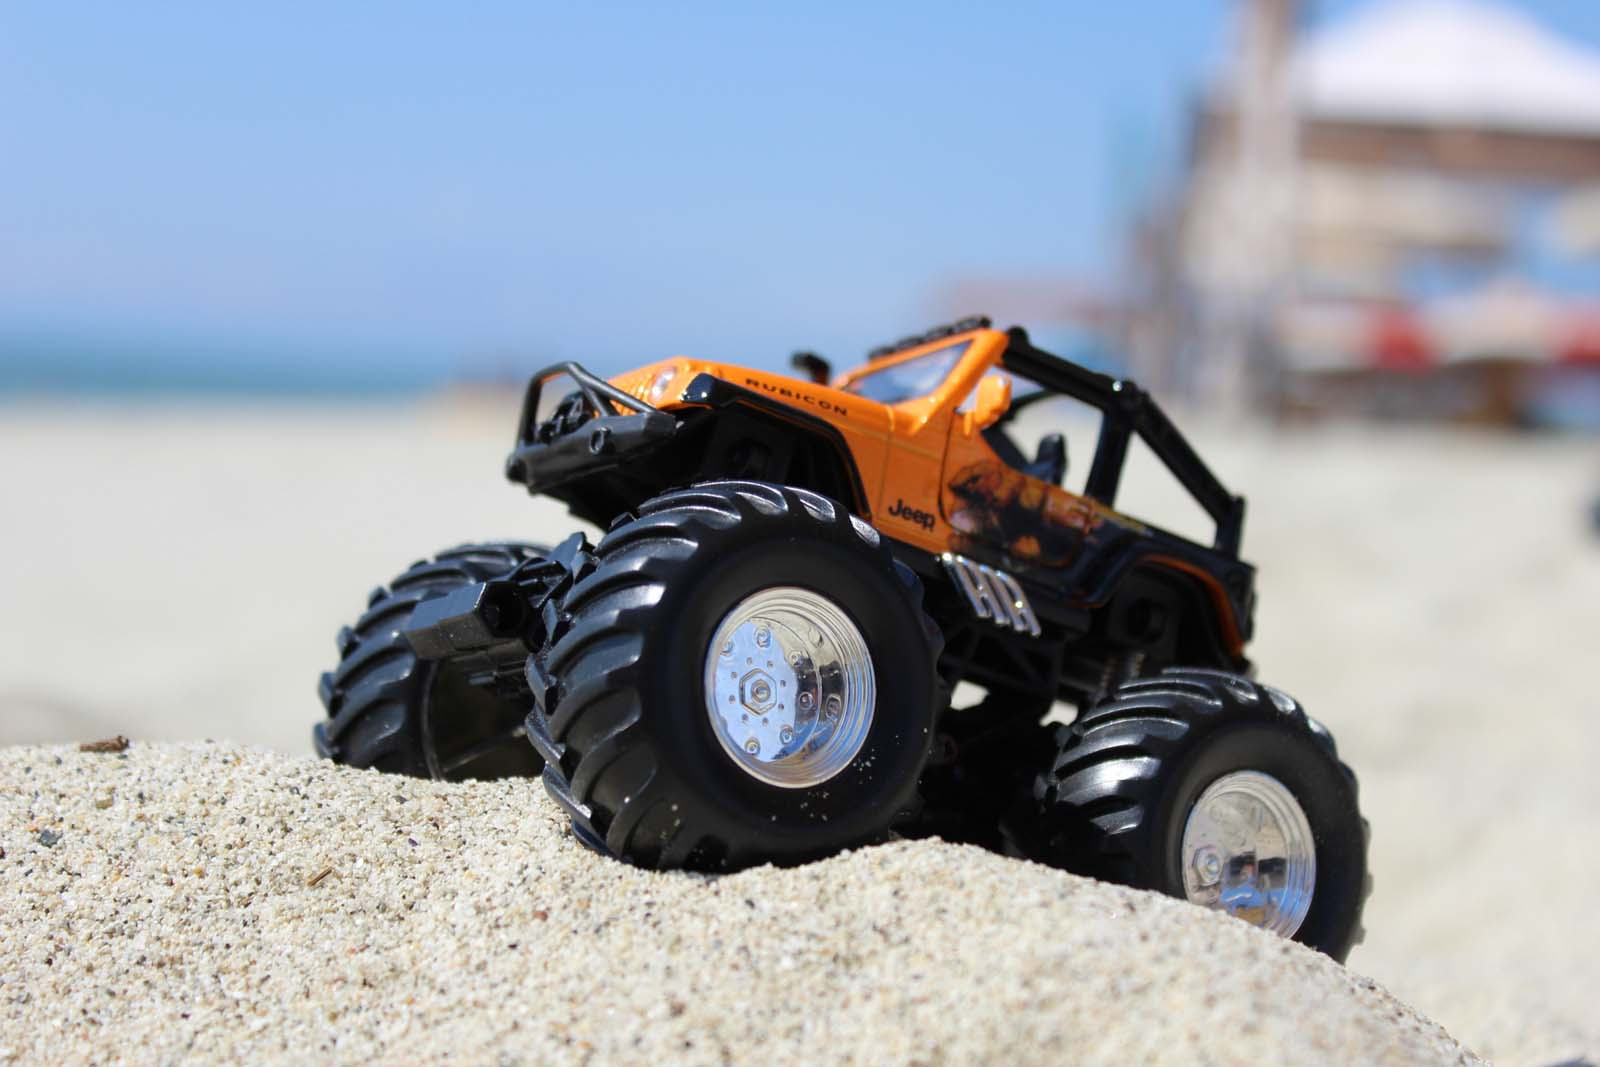 Jeep toy on sand